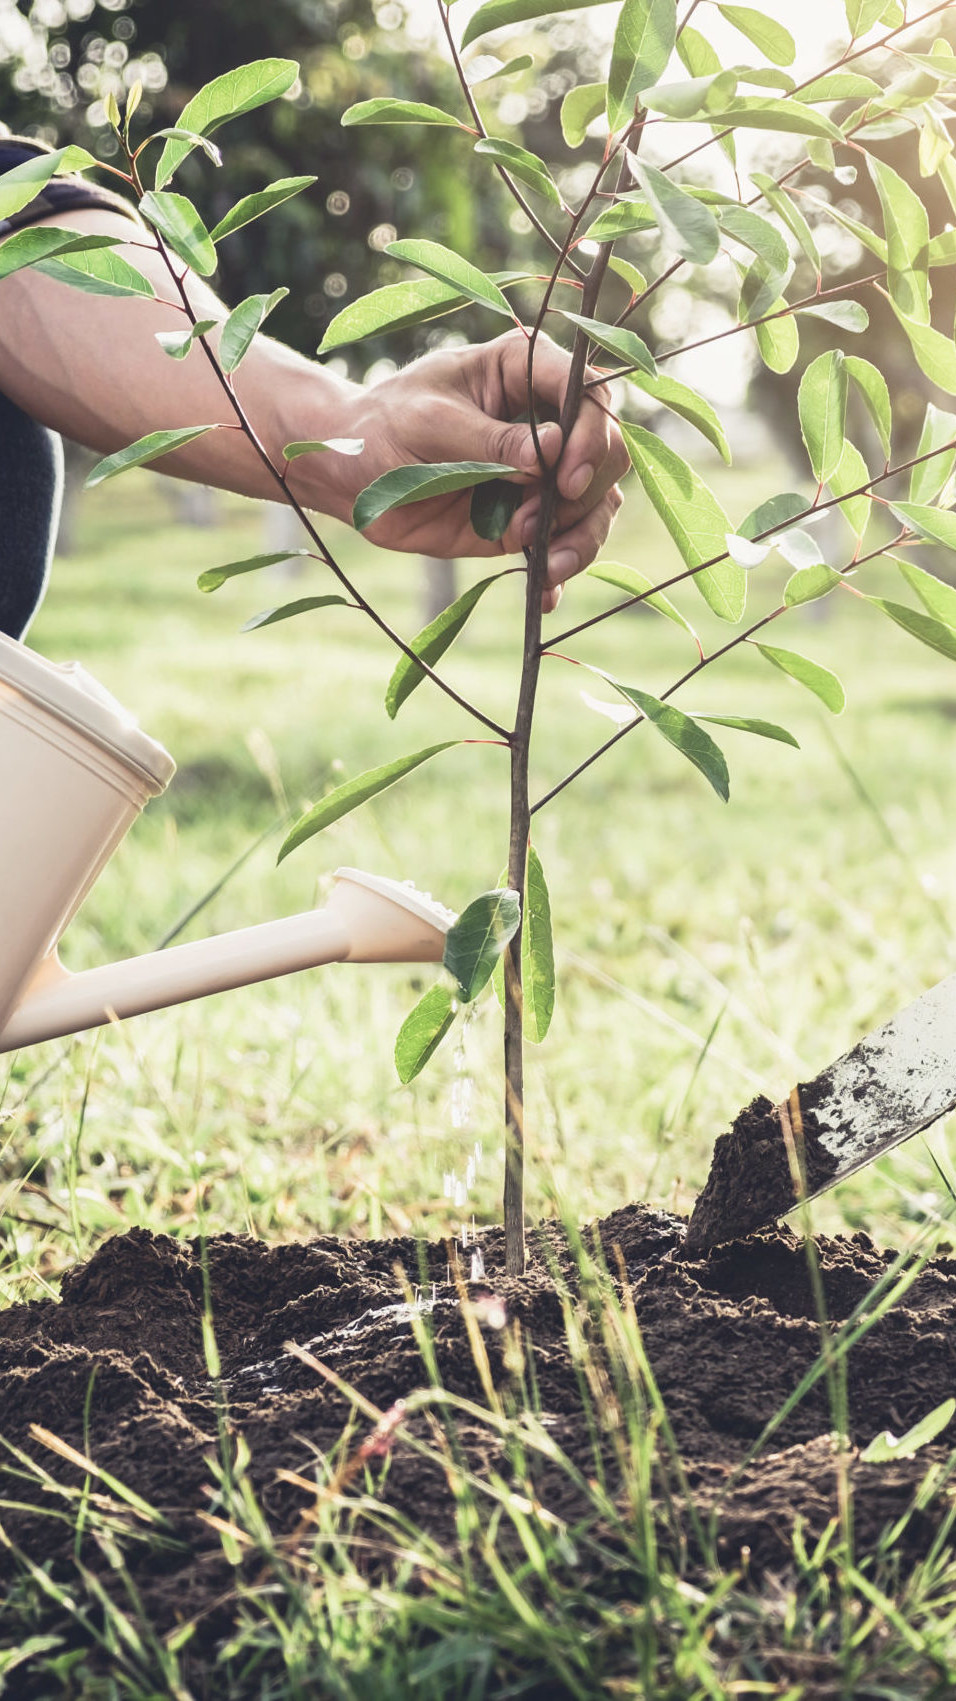 THE COMMUNITY INVESTMENT GUARANTEE POOL (CIGP) — two people planting a tree